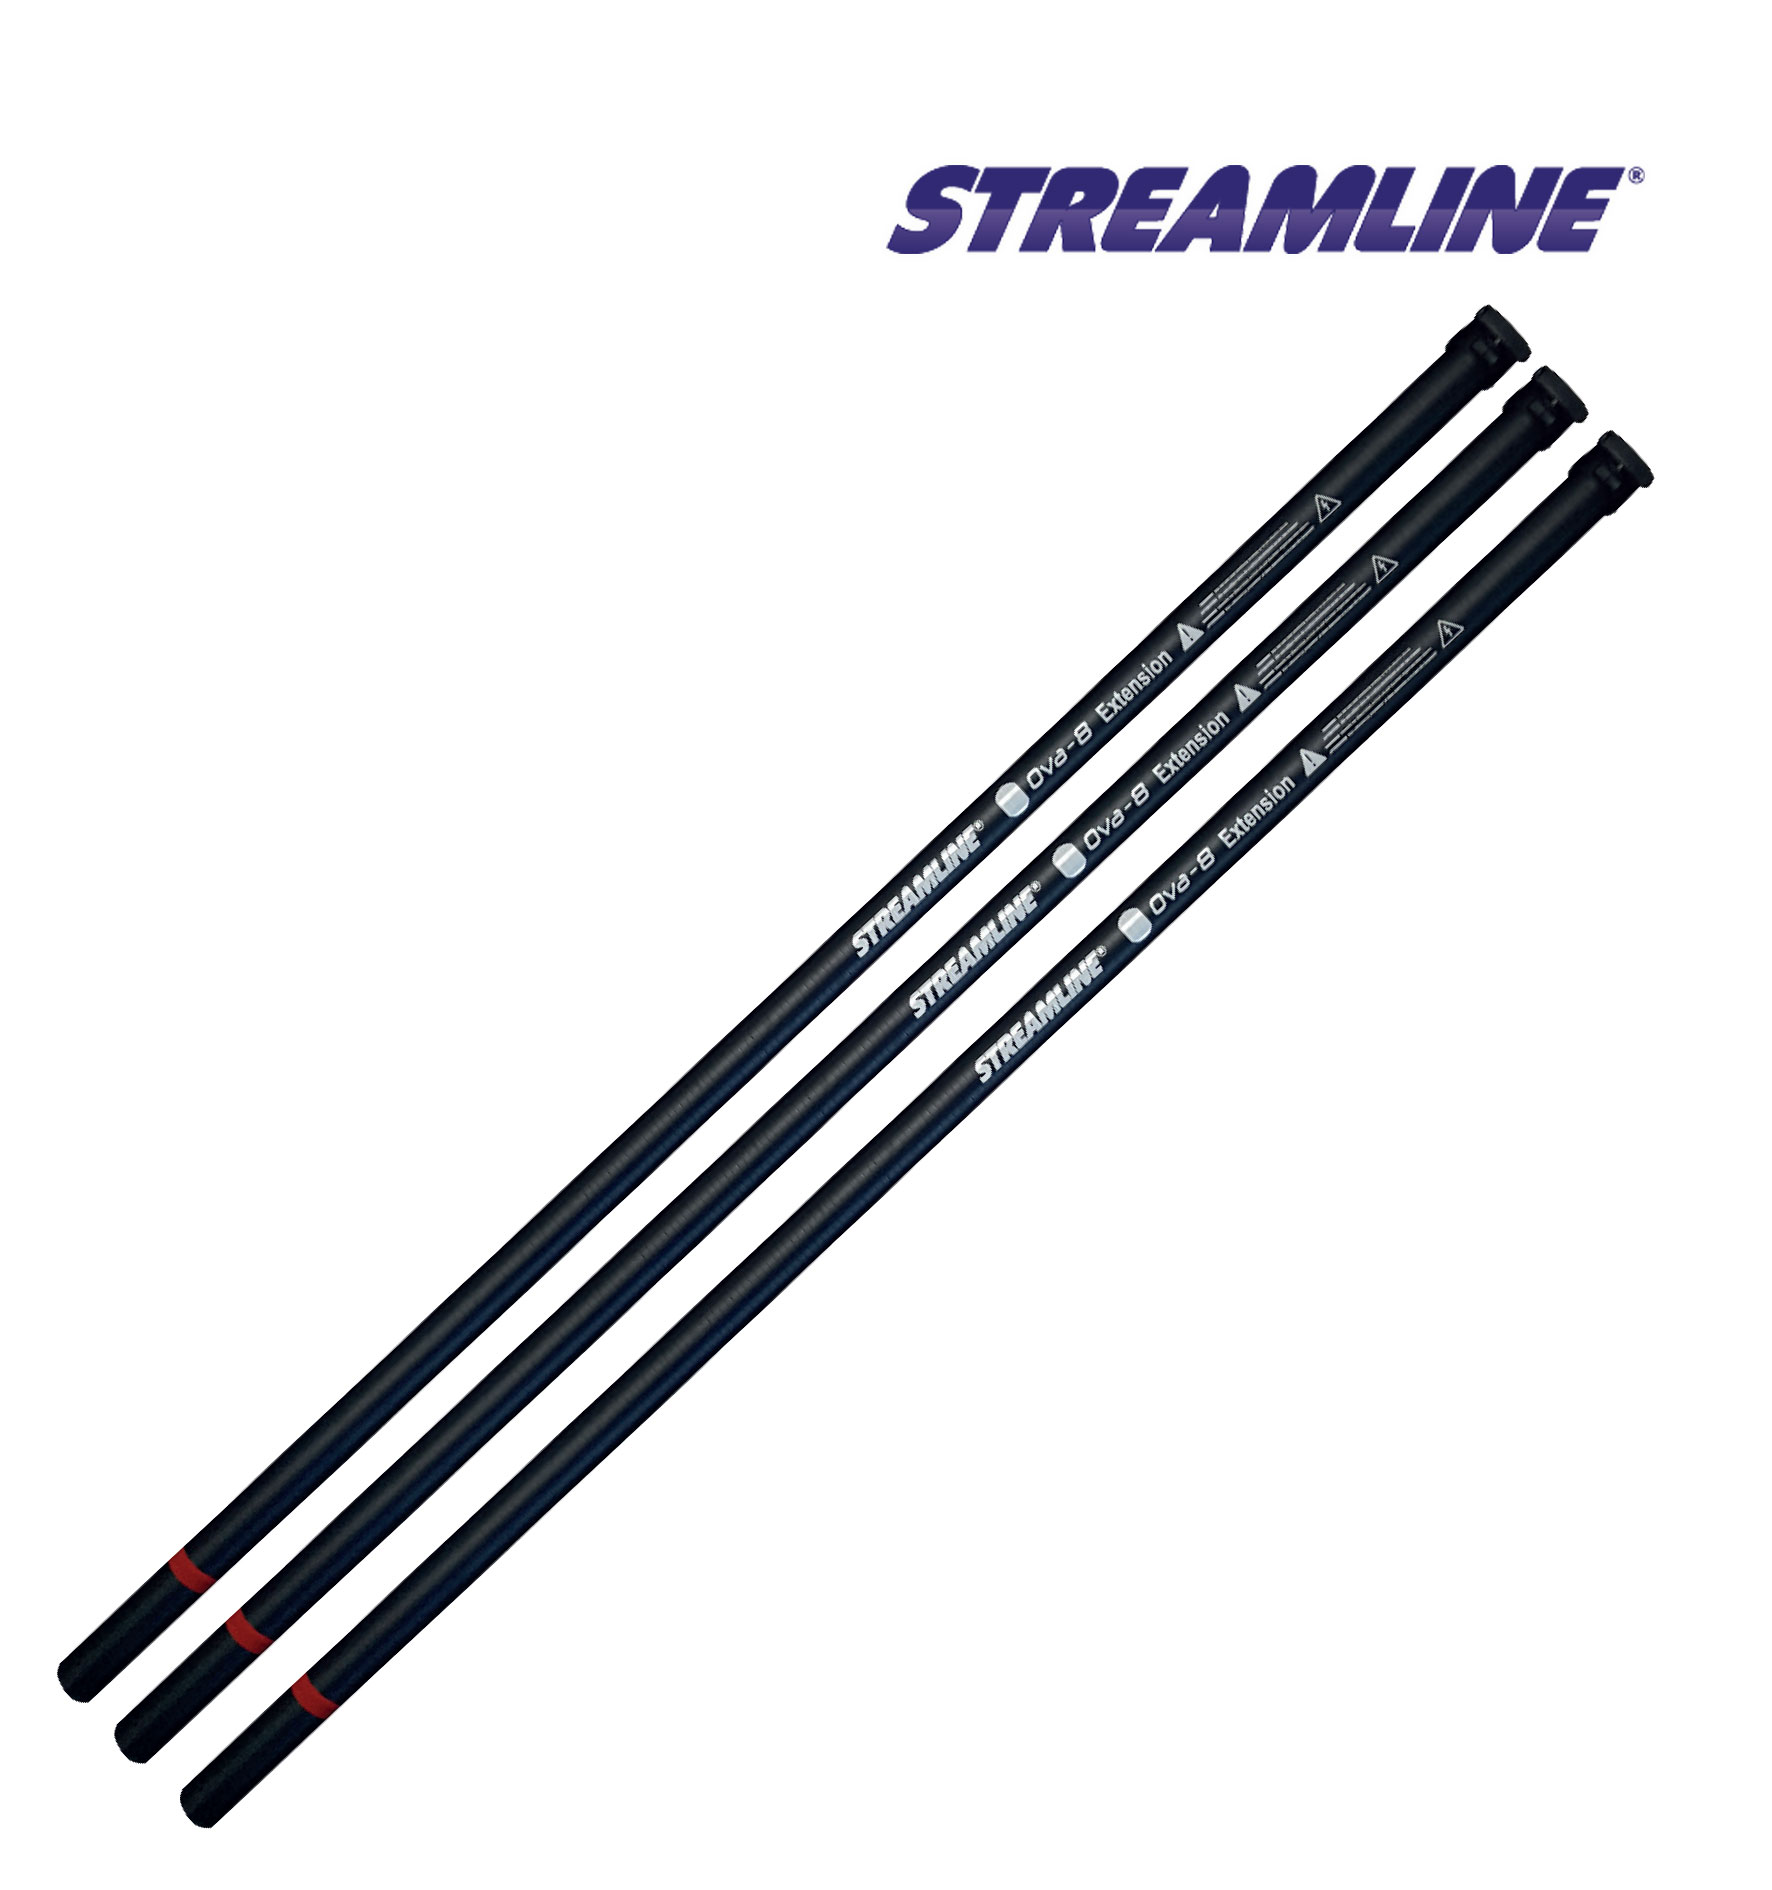 STREAMLINE® OVA8® pole extensions – 17ft to 35ft and 25ft to 40ft